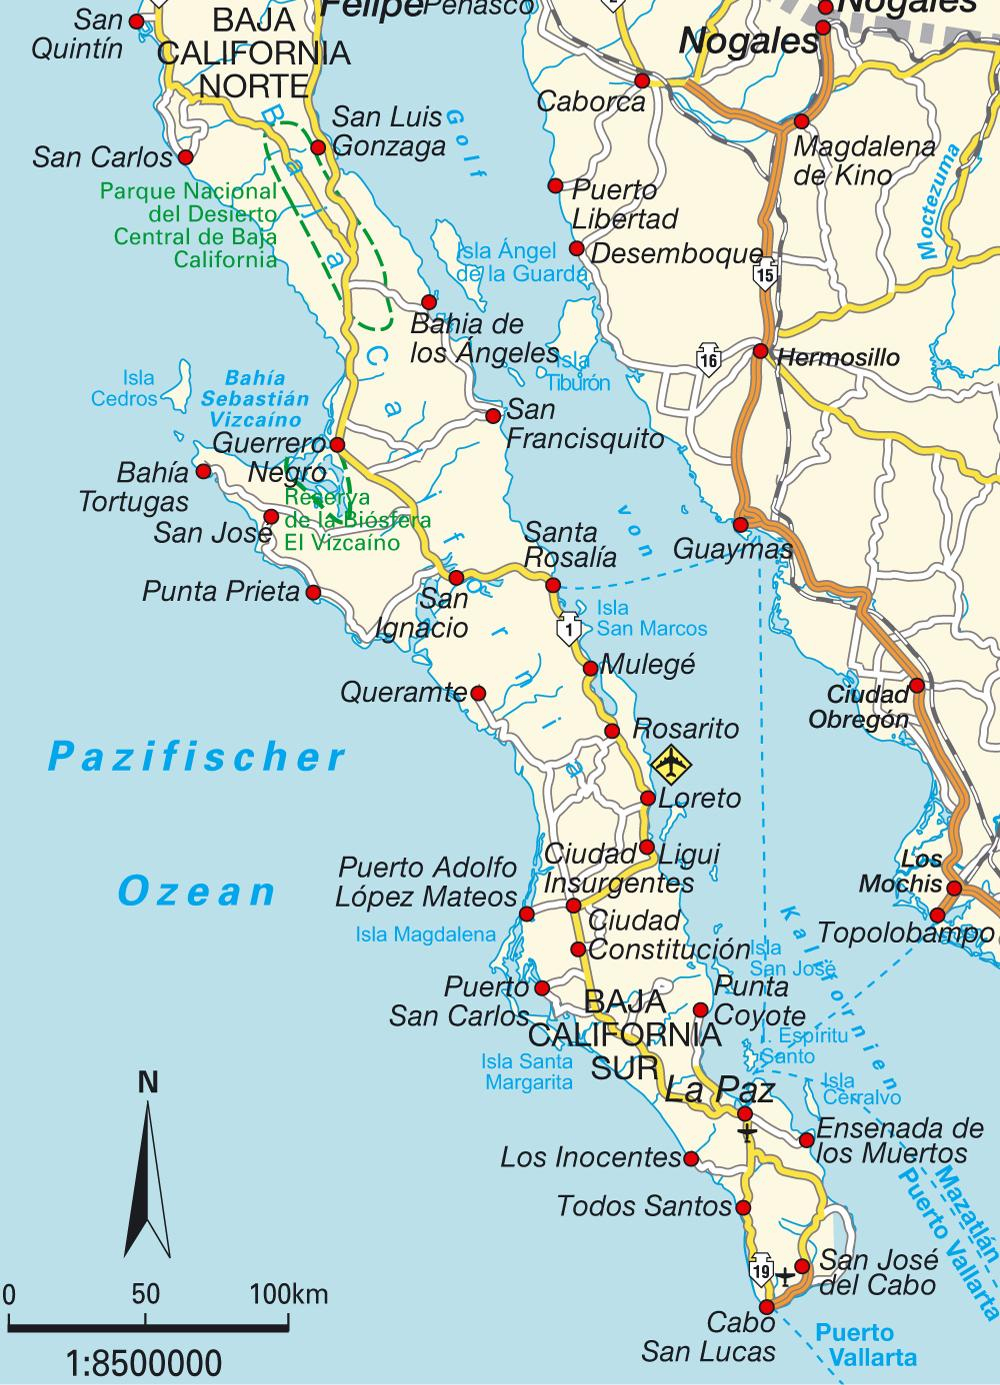 Baja Sur Sierra Cacachilens Maps Of California La Paz Baja - Detailed Baja California Map